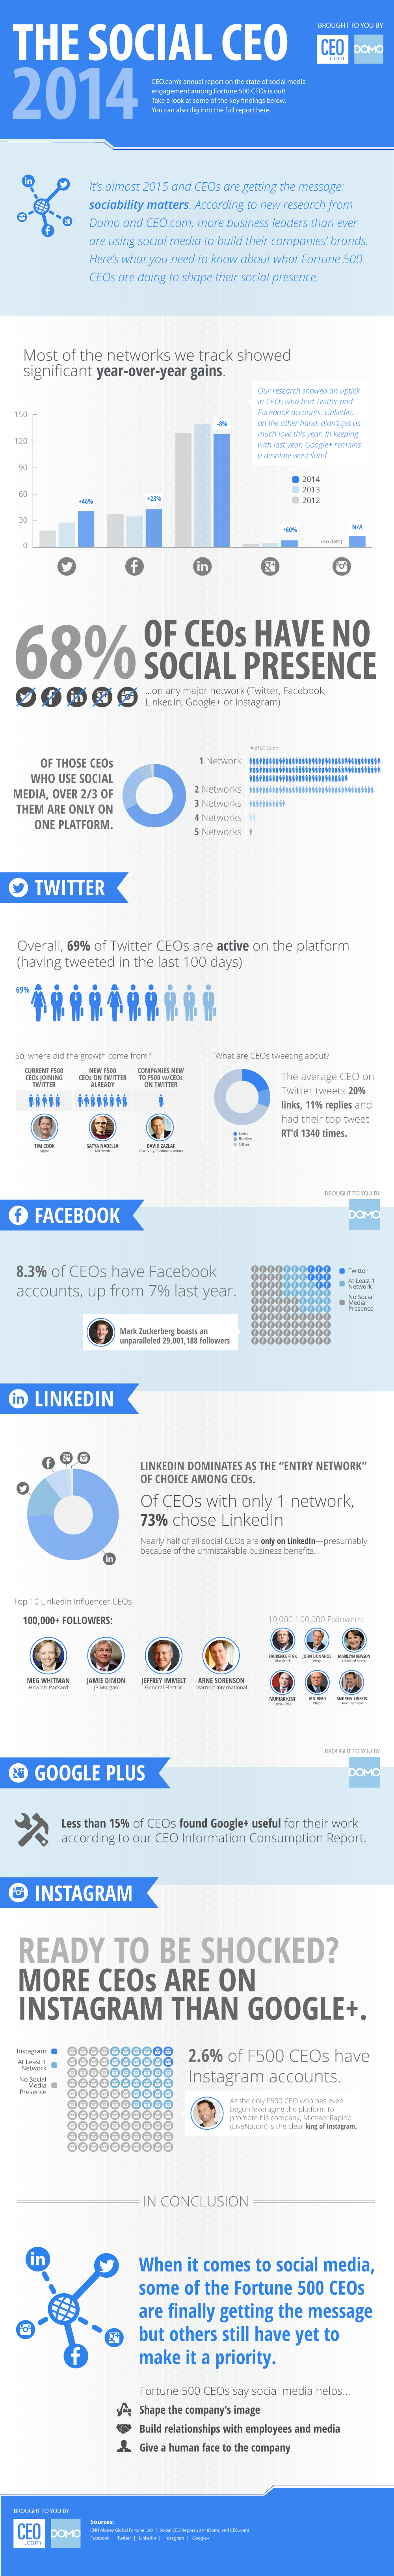 SocialCEO14_infographic